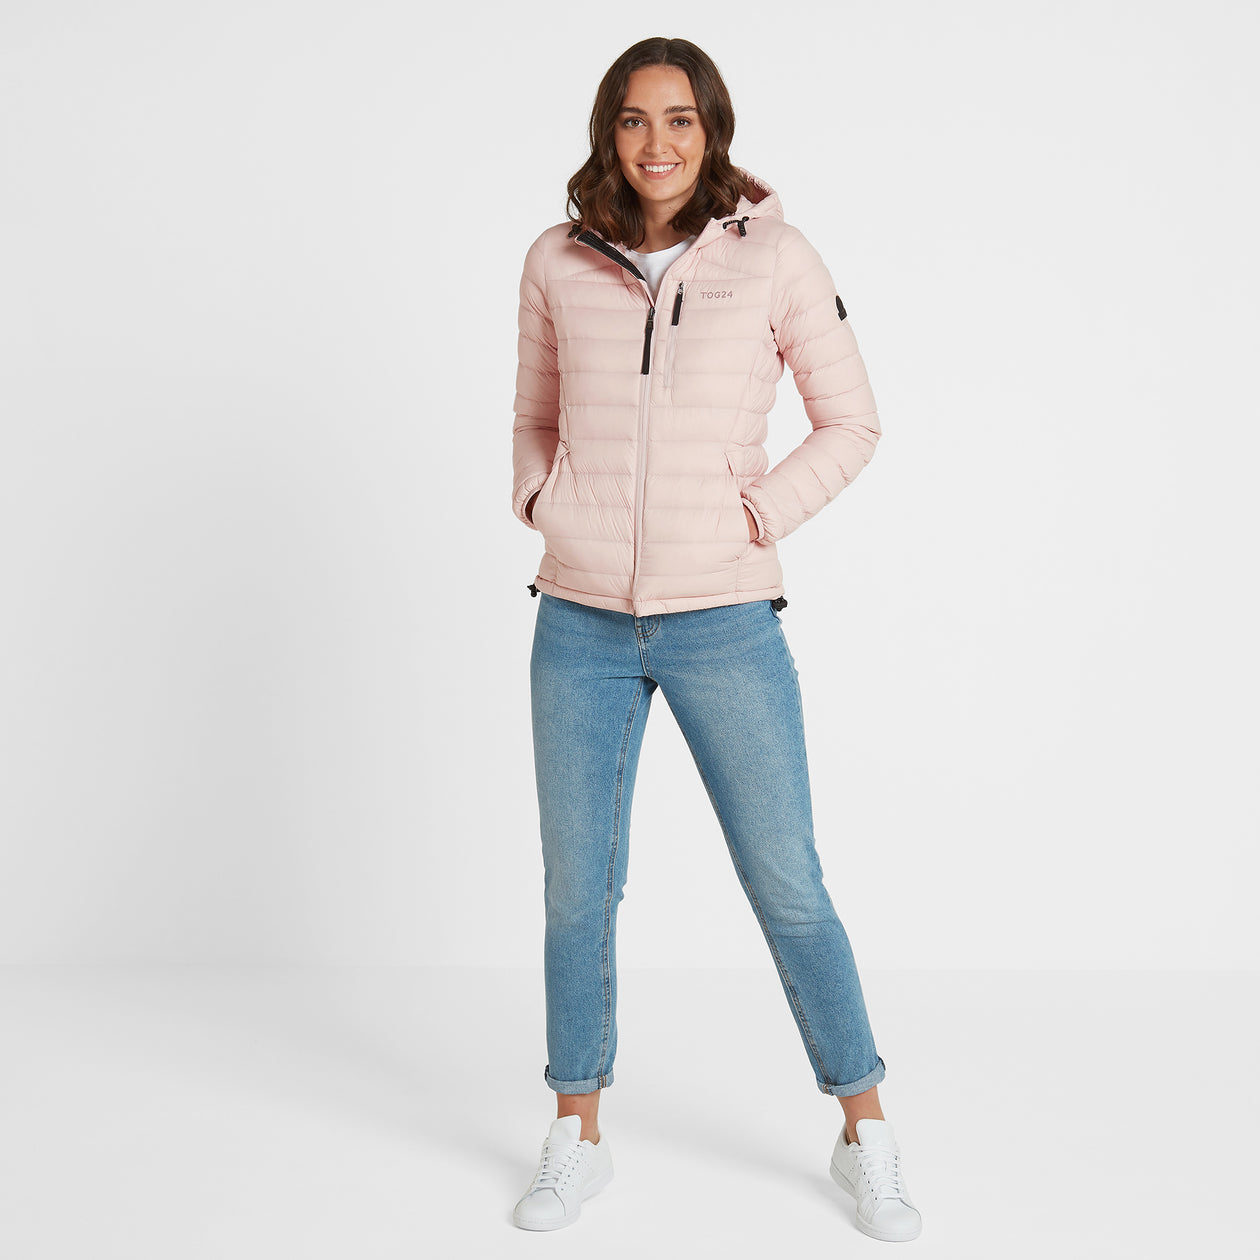 Base Womens Hooded Down Jacket - Rose Pink image 4